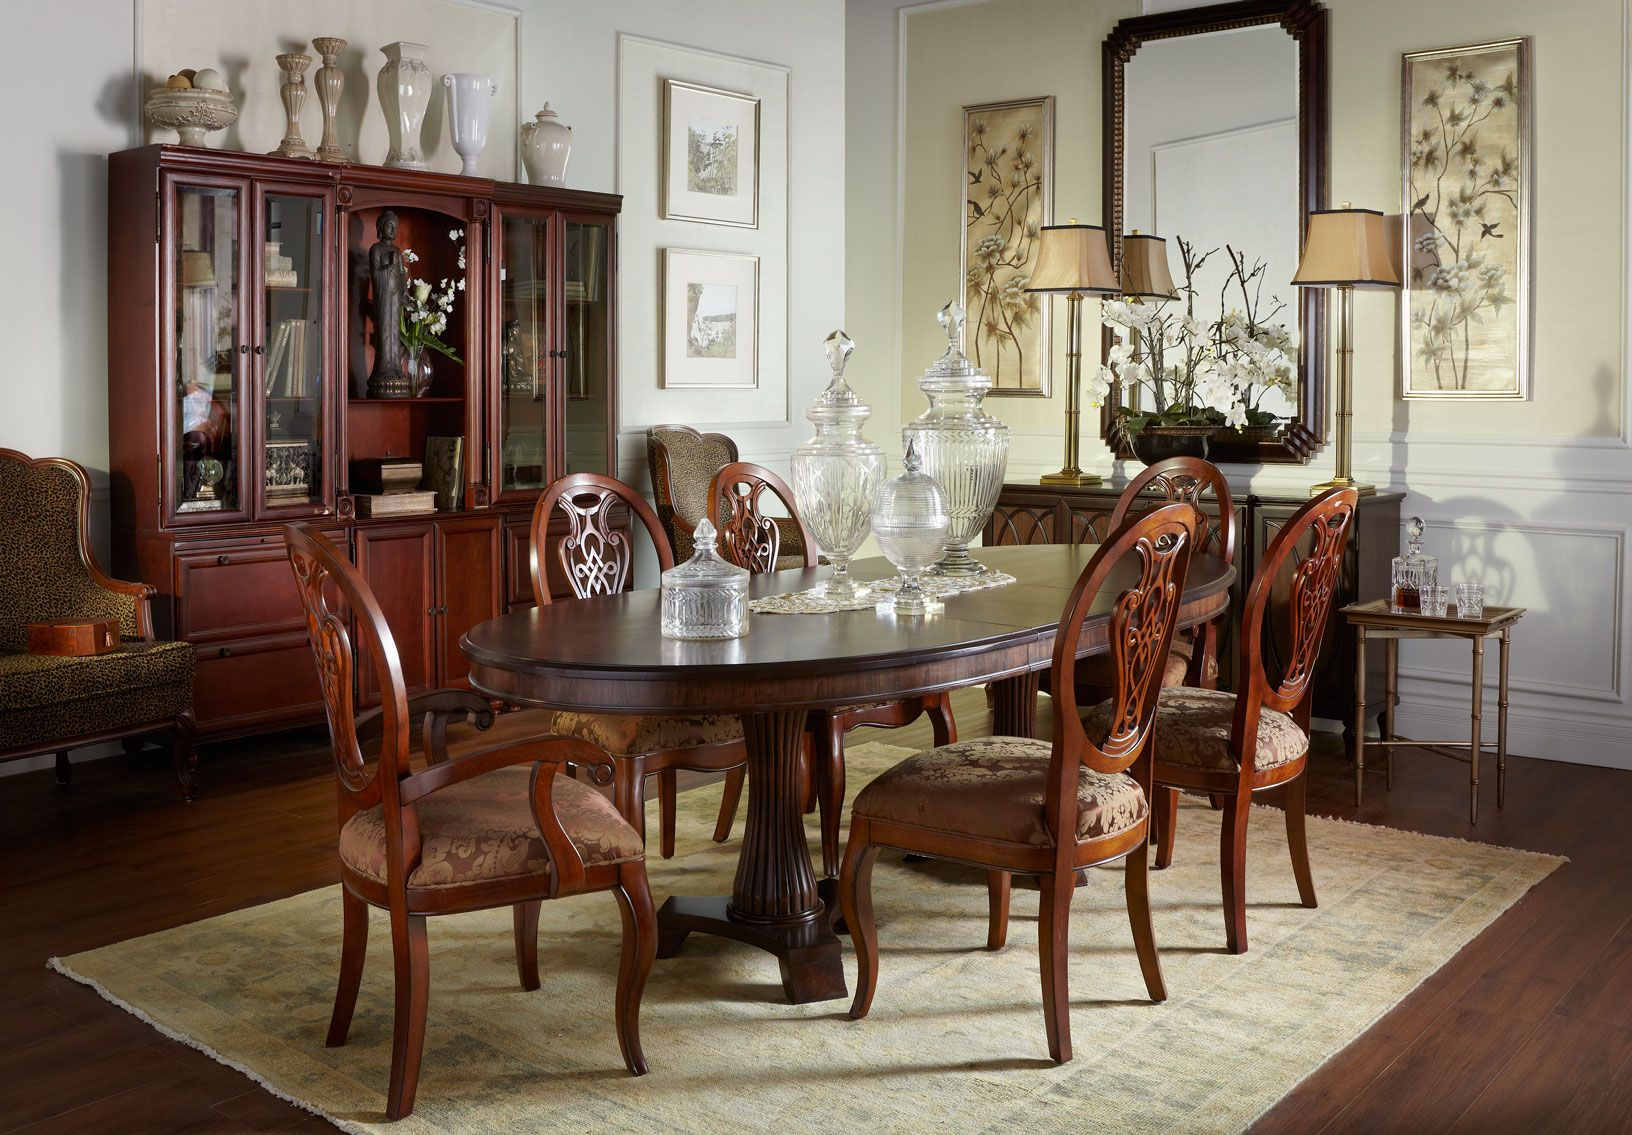 Calais Table Mayfair Chairs  Bombay Canada  Home Decor Custom Building Dining Room Table Inspiration Design